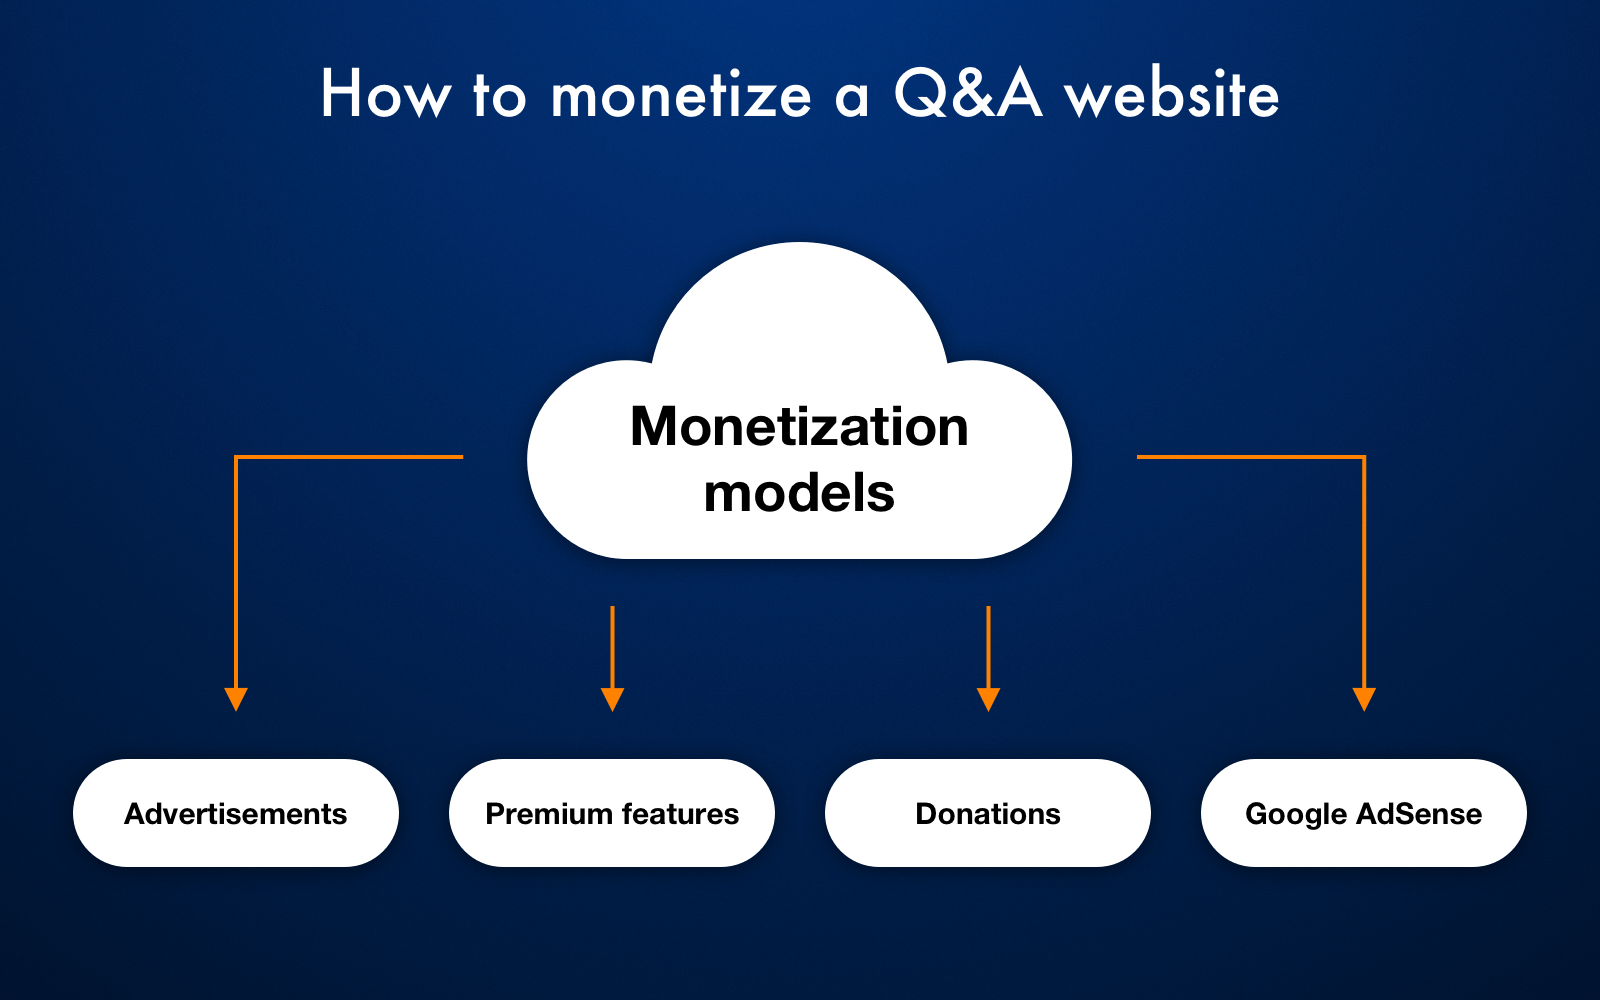 Monetization Models of a Q&A website